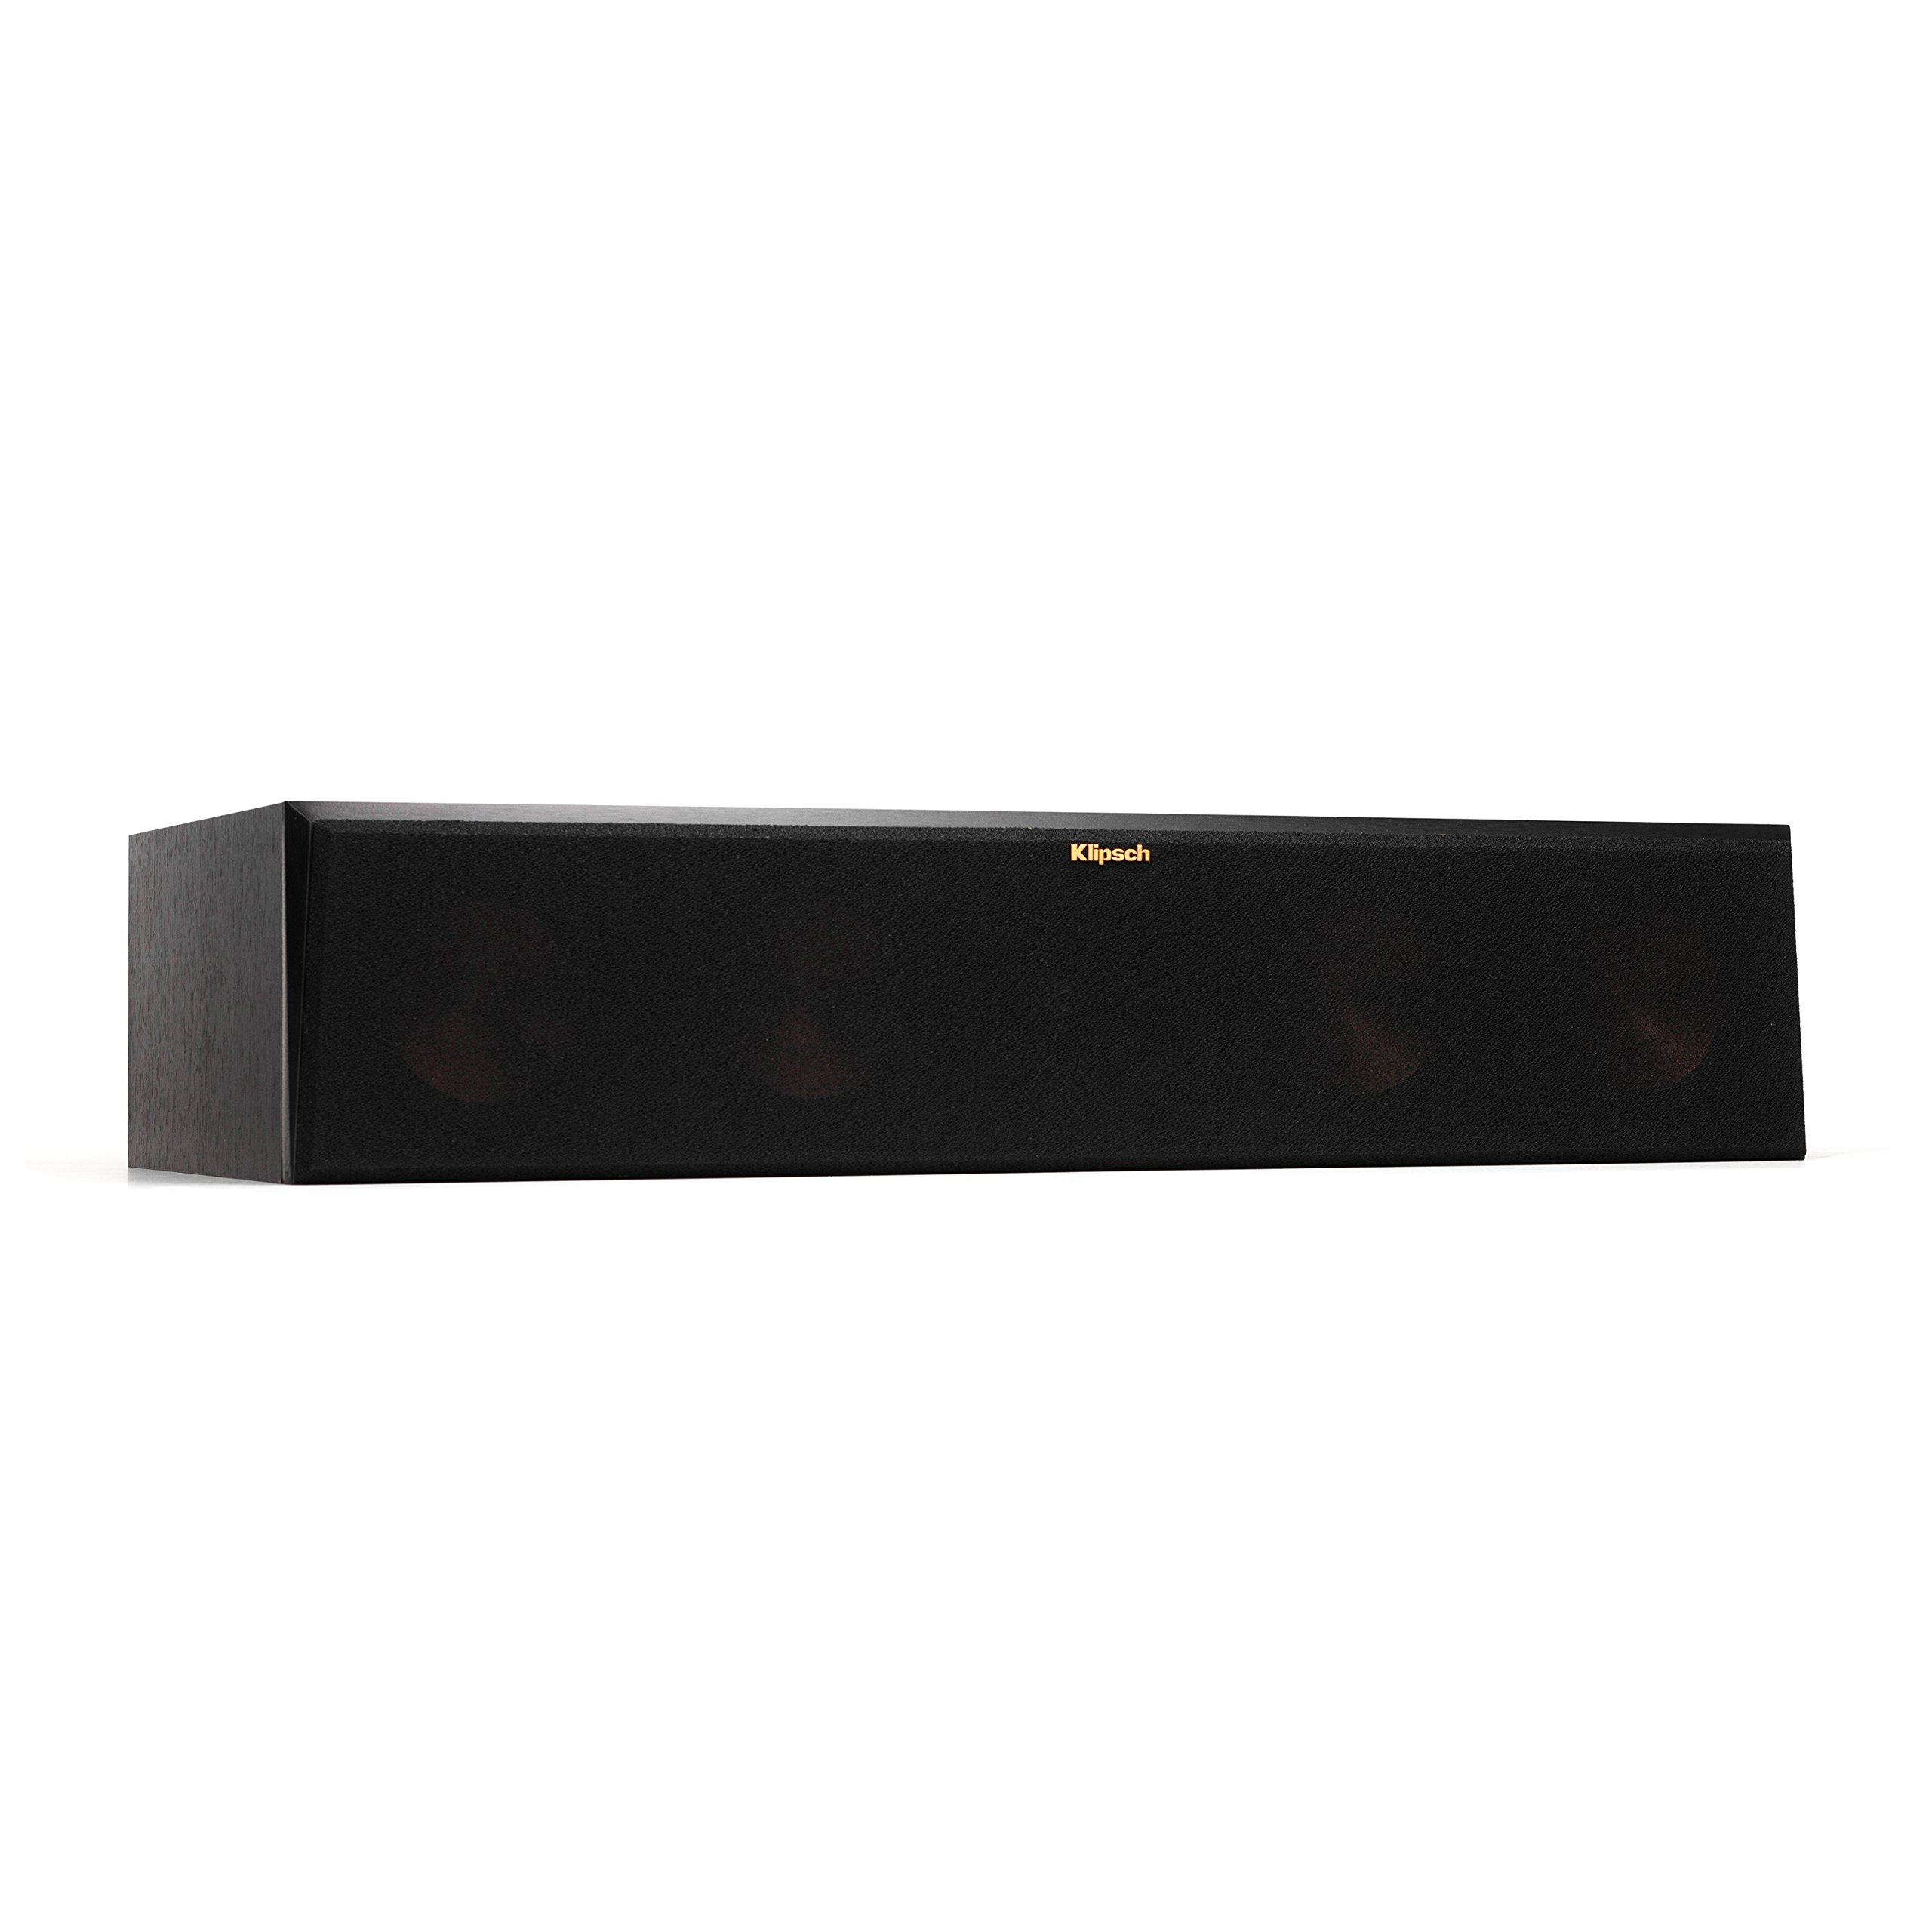 Klipsch RP-450C  Center Channel Speaker - Ebony by Klipsch